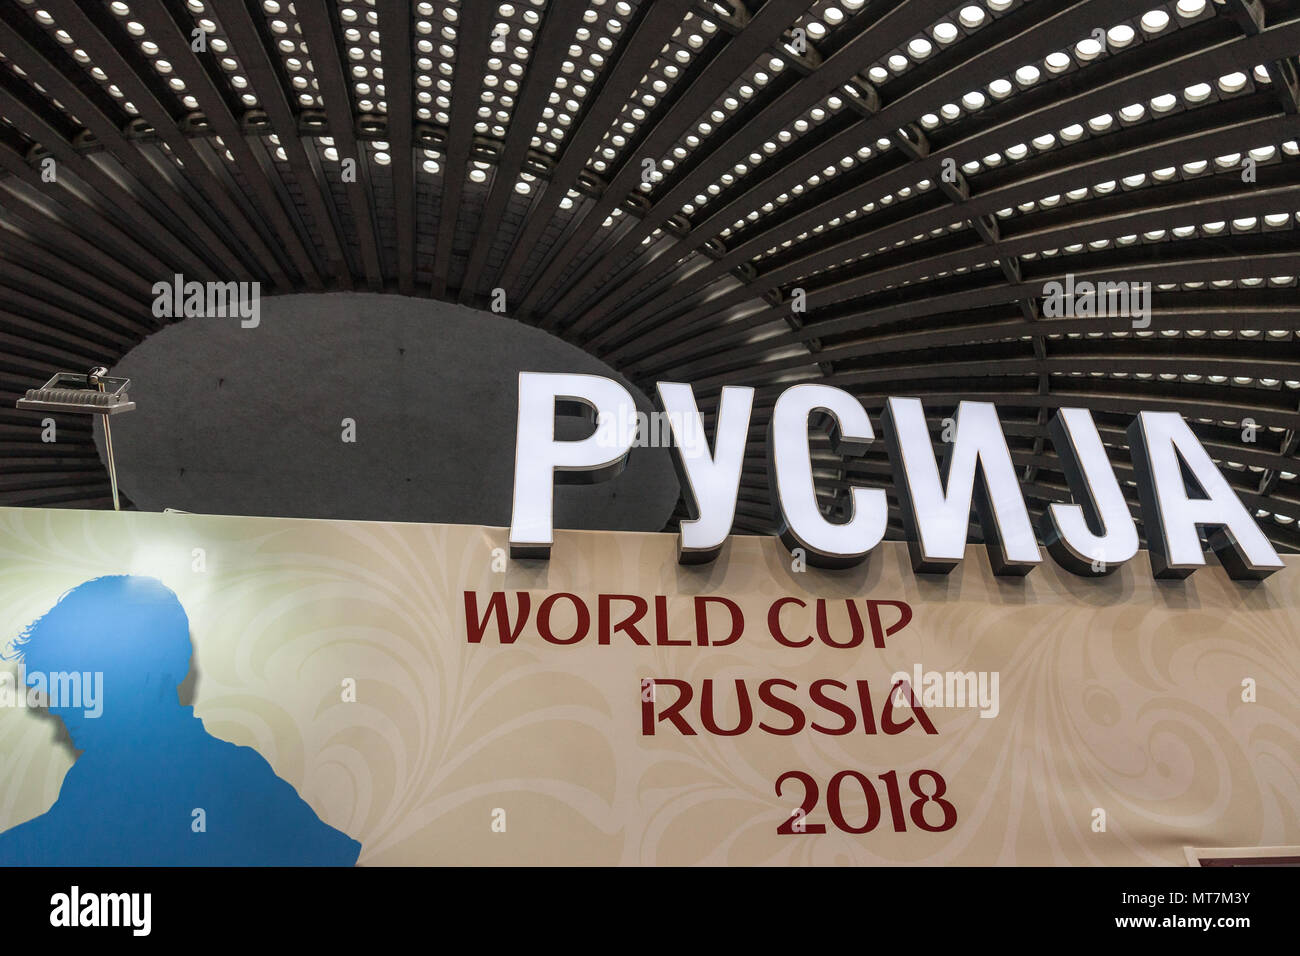 BELGRADE, SERBIA - FEBRUARY 23, 2018: Logo from the 2018 Football FIFA World Cup in Russia in a fair in Serbia, the word Russia being written in Cyril - Stock Image